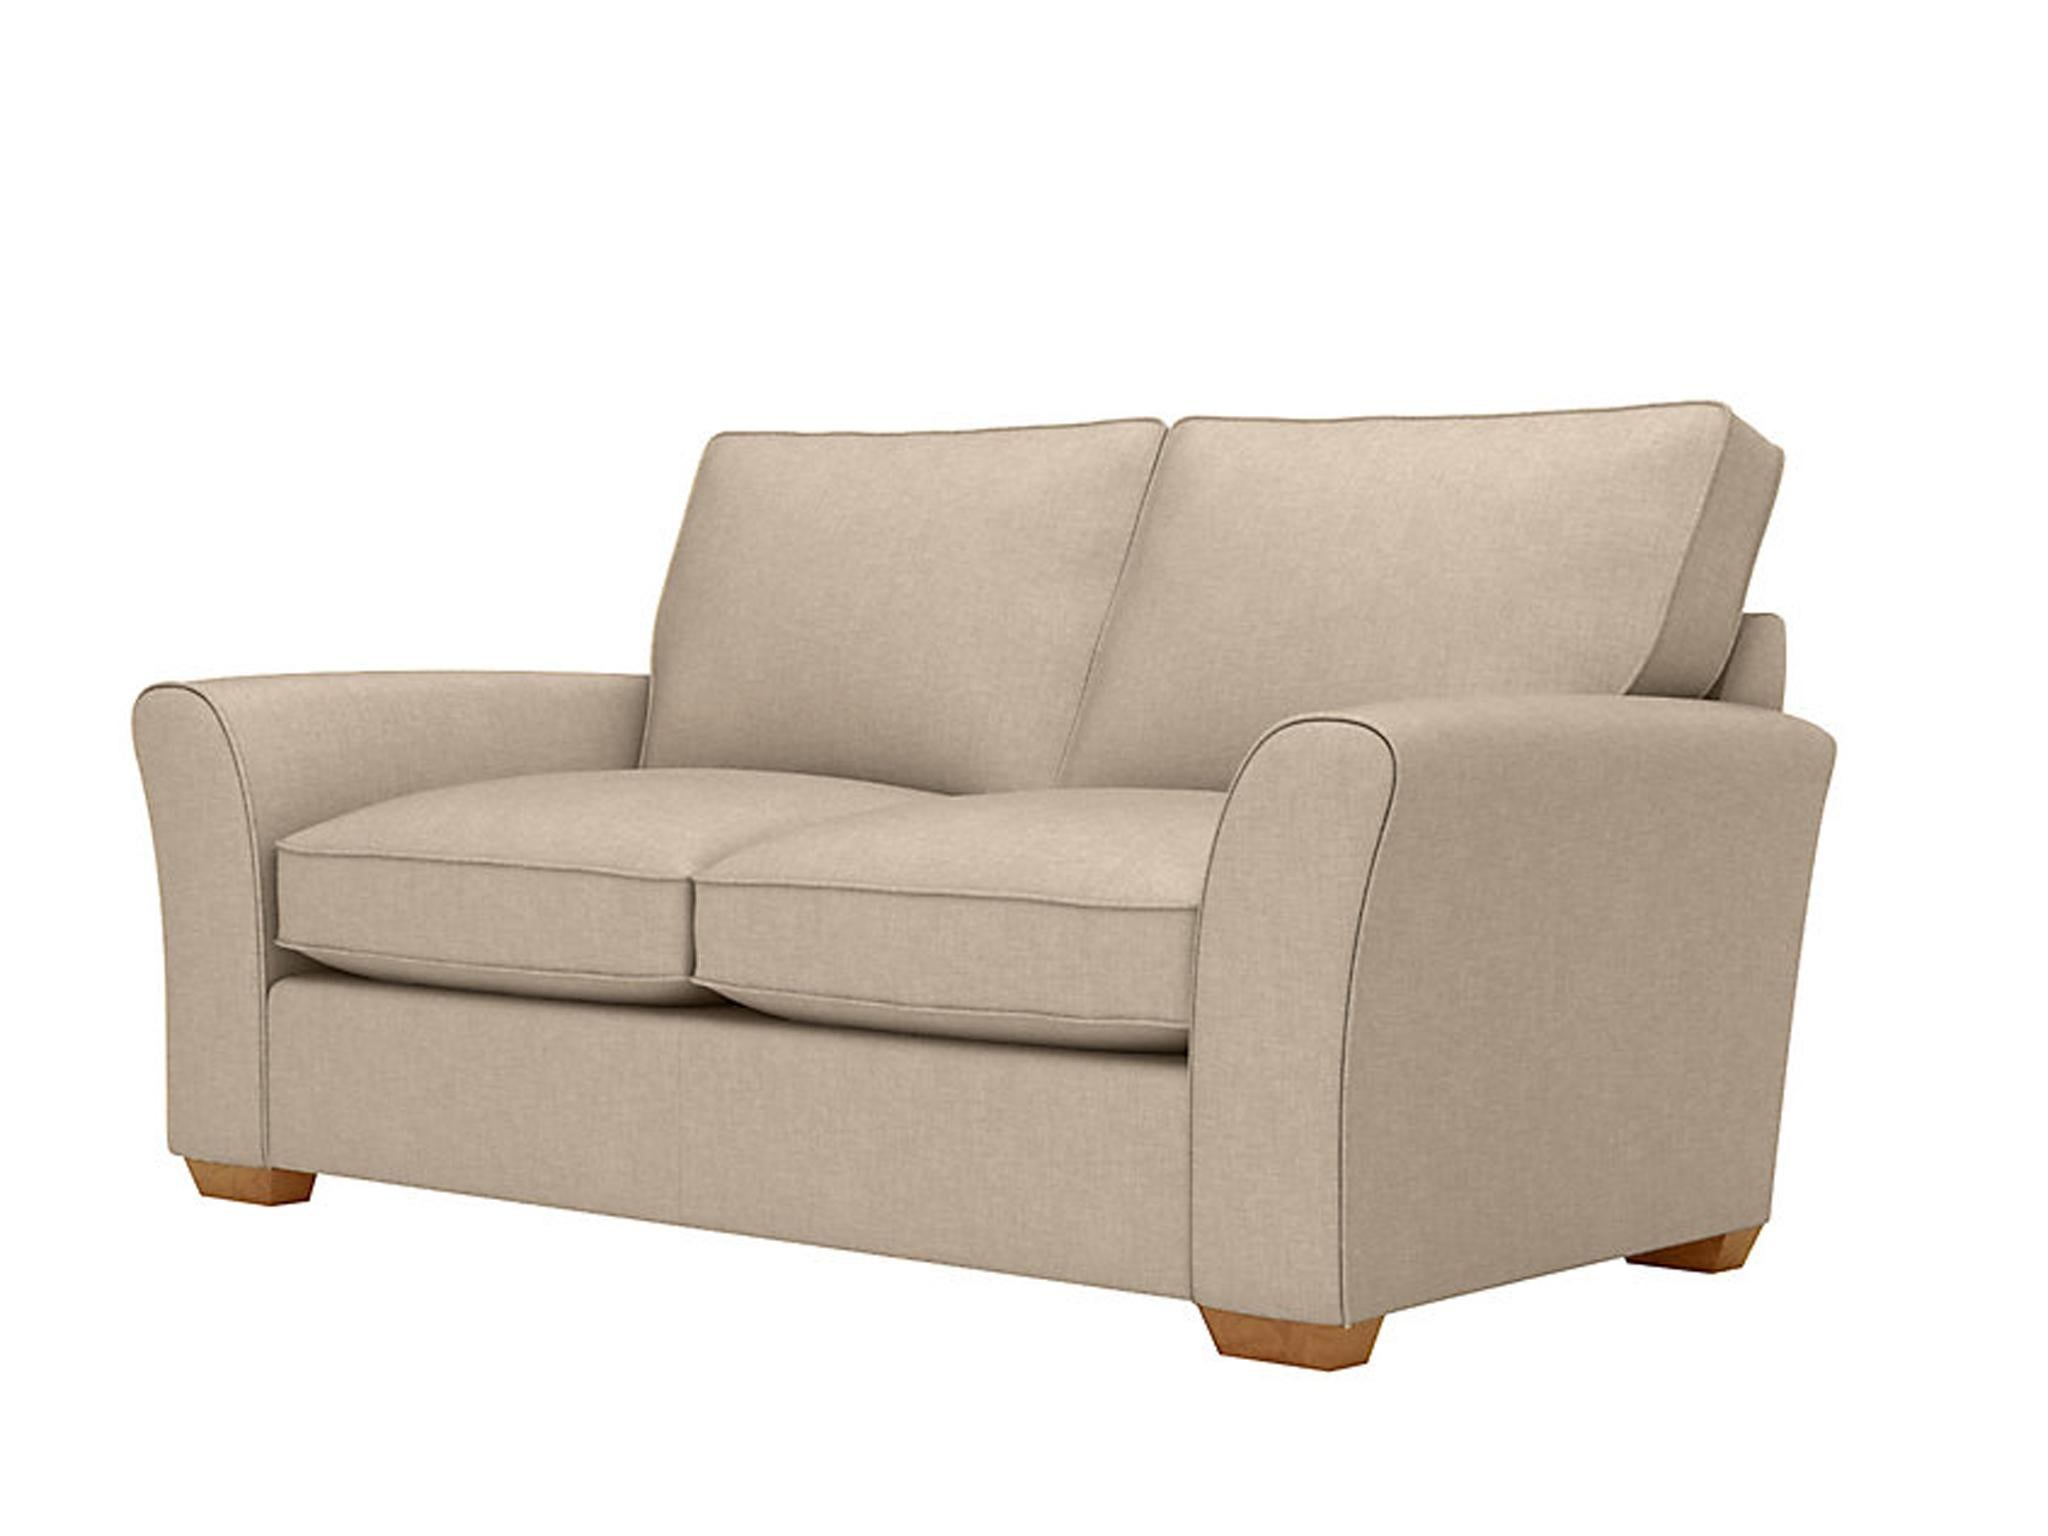 12 best sofa beds the independent rh independent co uk Full Sleeper Sofa Costco Sleeper Sofa